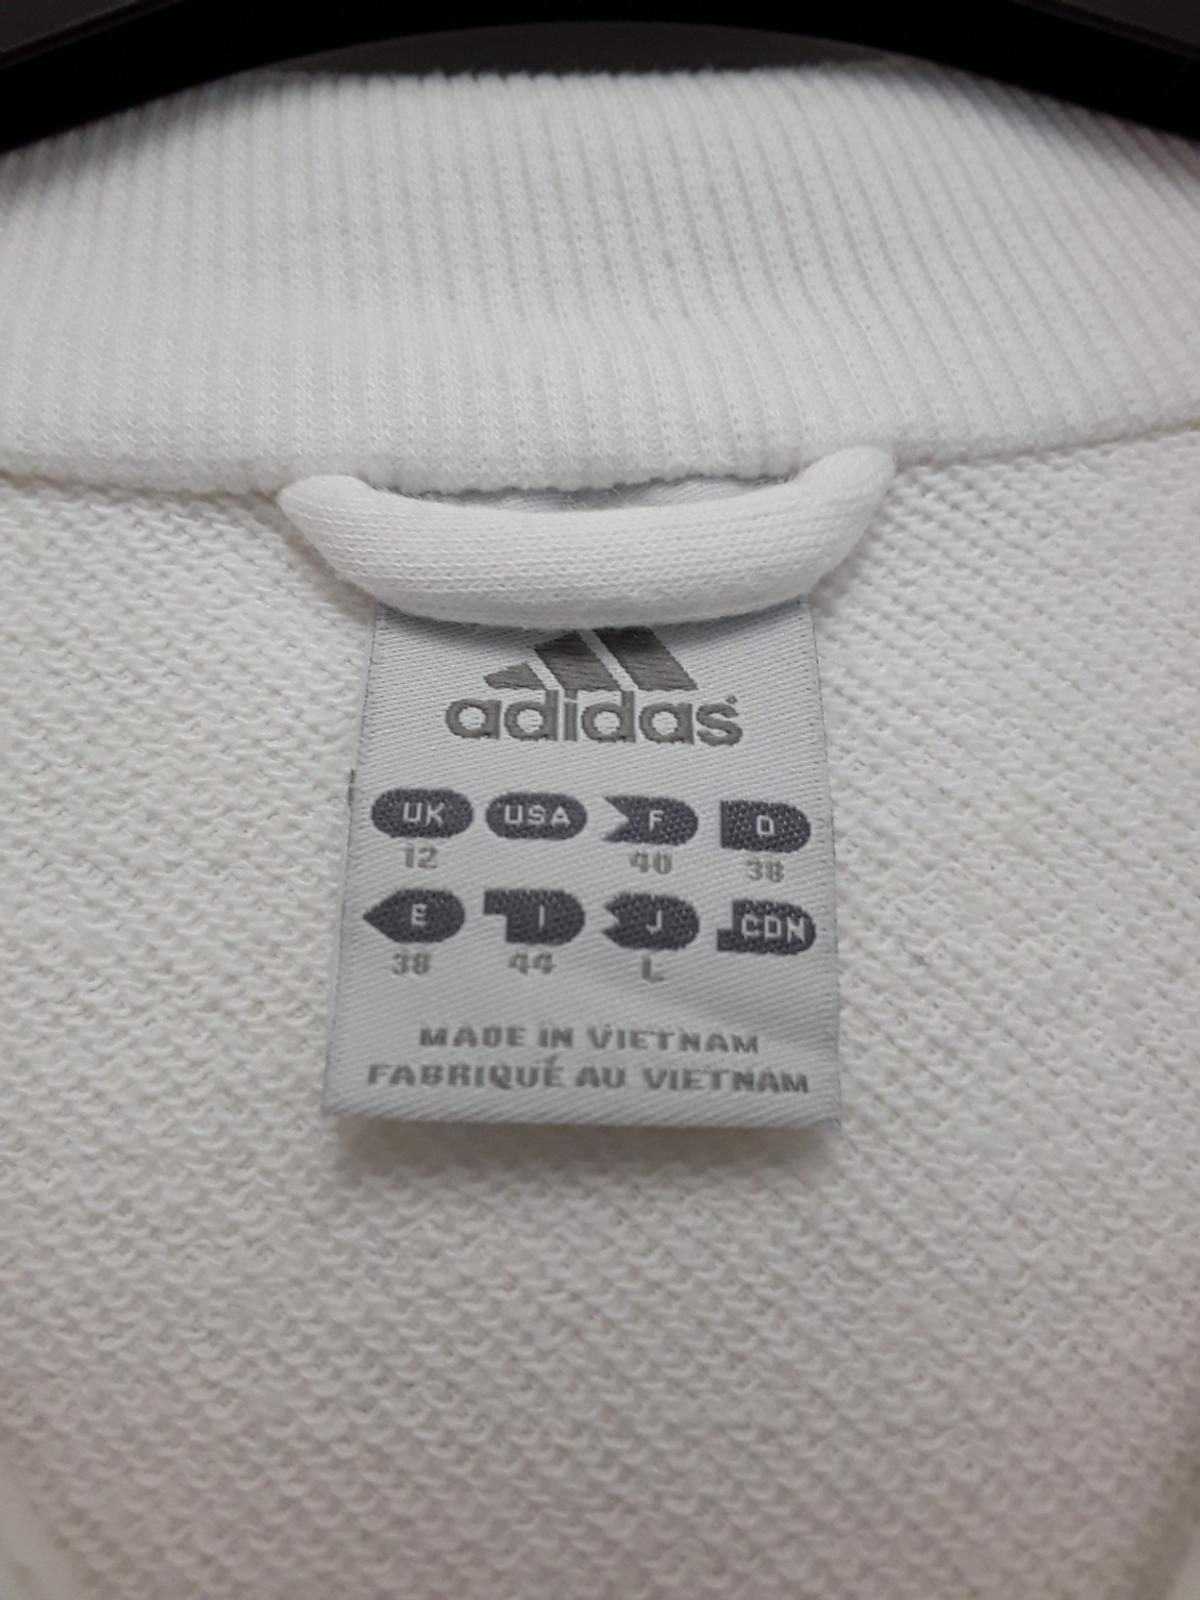 Adidas Sports Top. Full Zip. White. Size 12. ♧ Please view my other items for sale